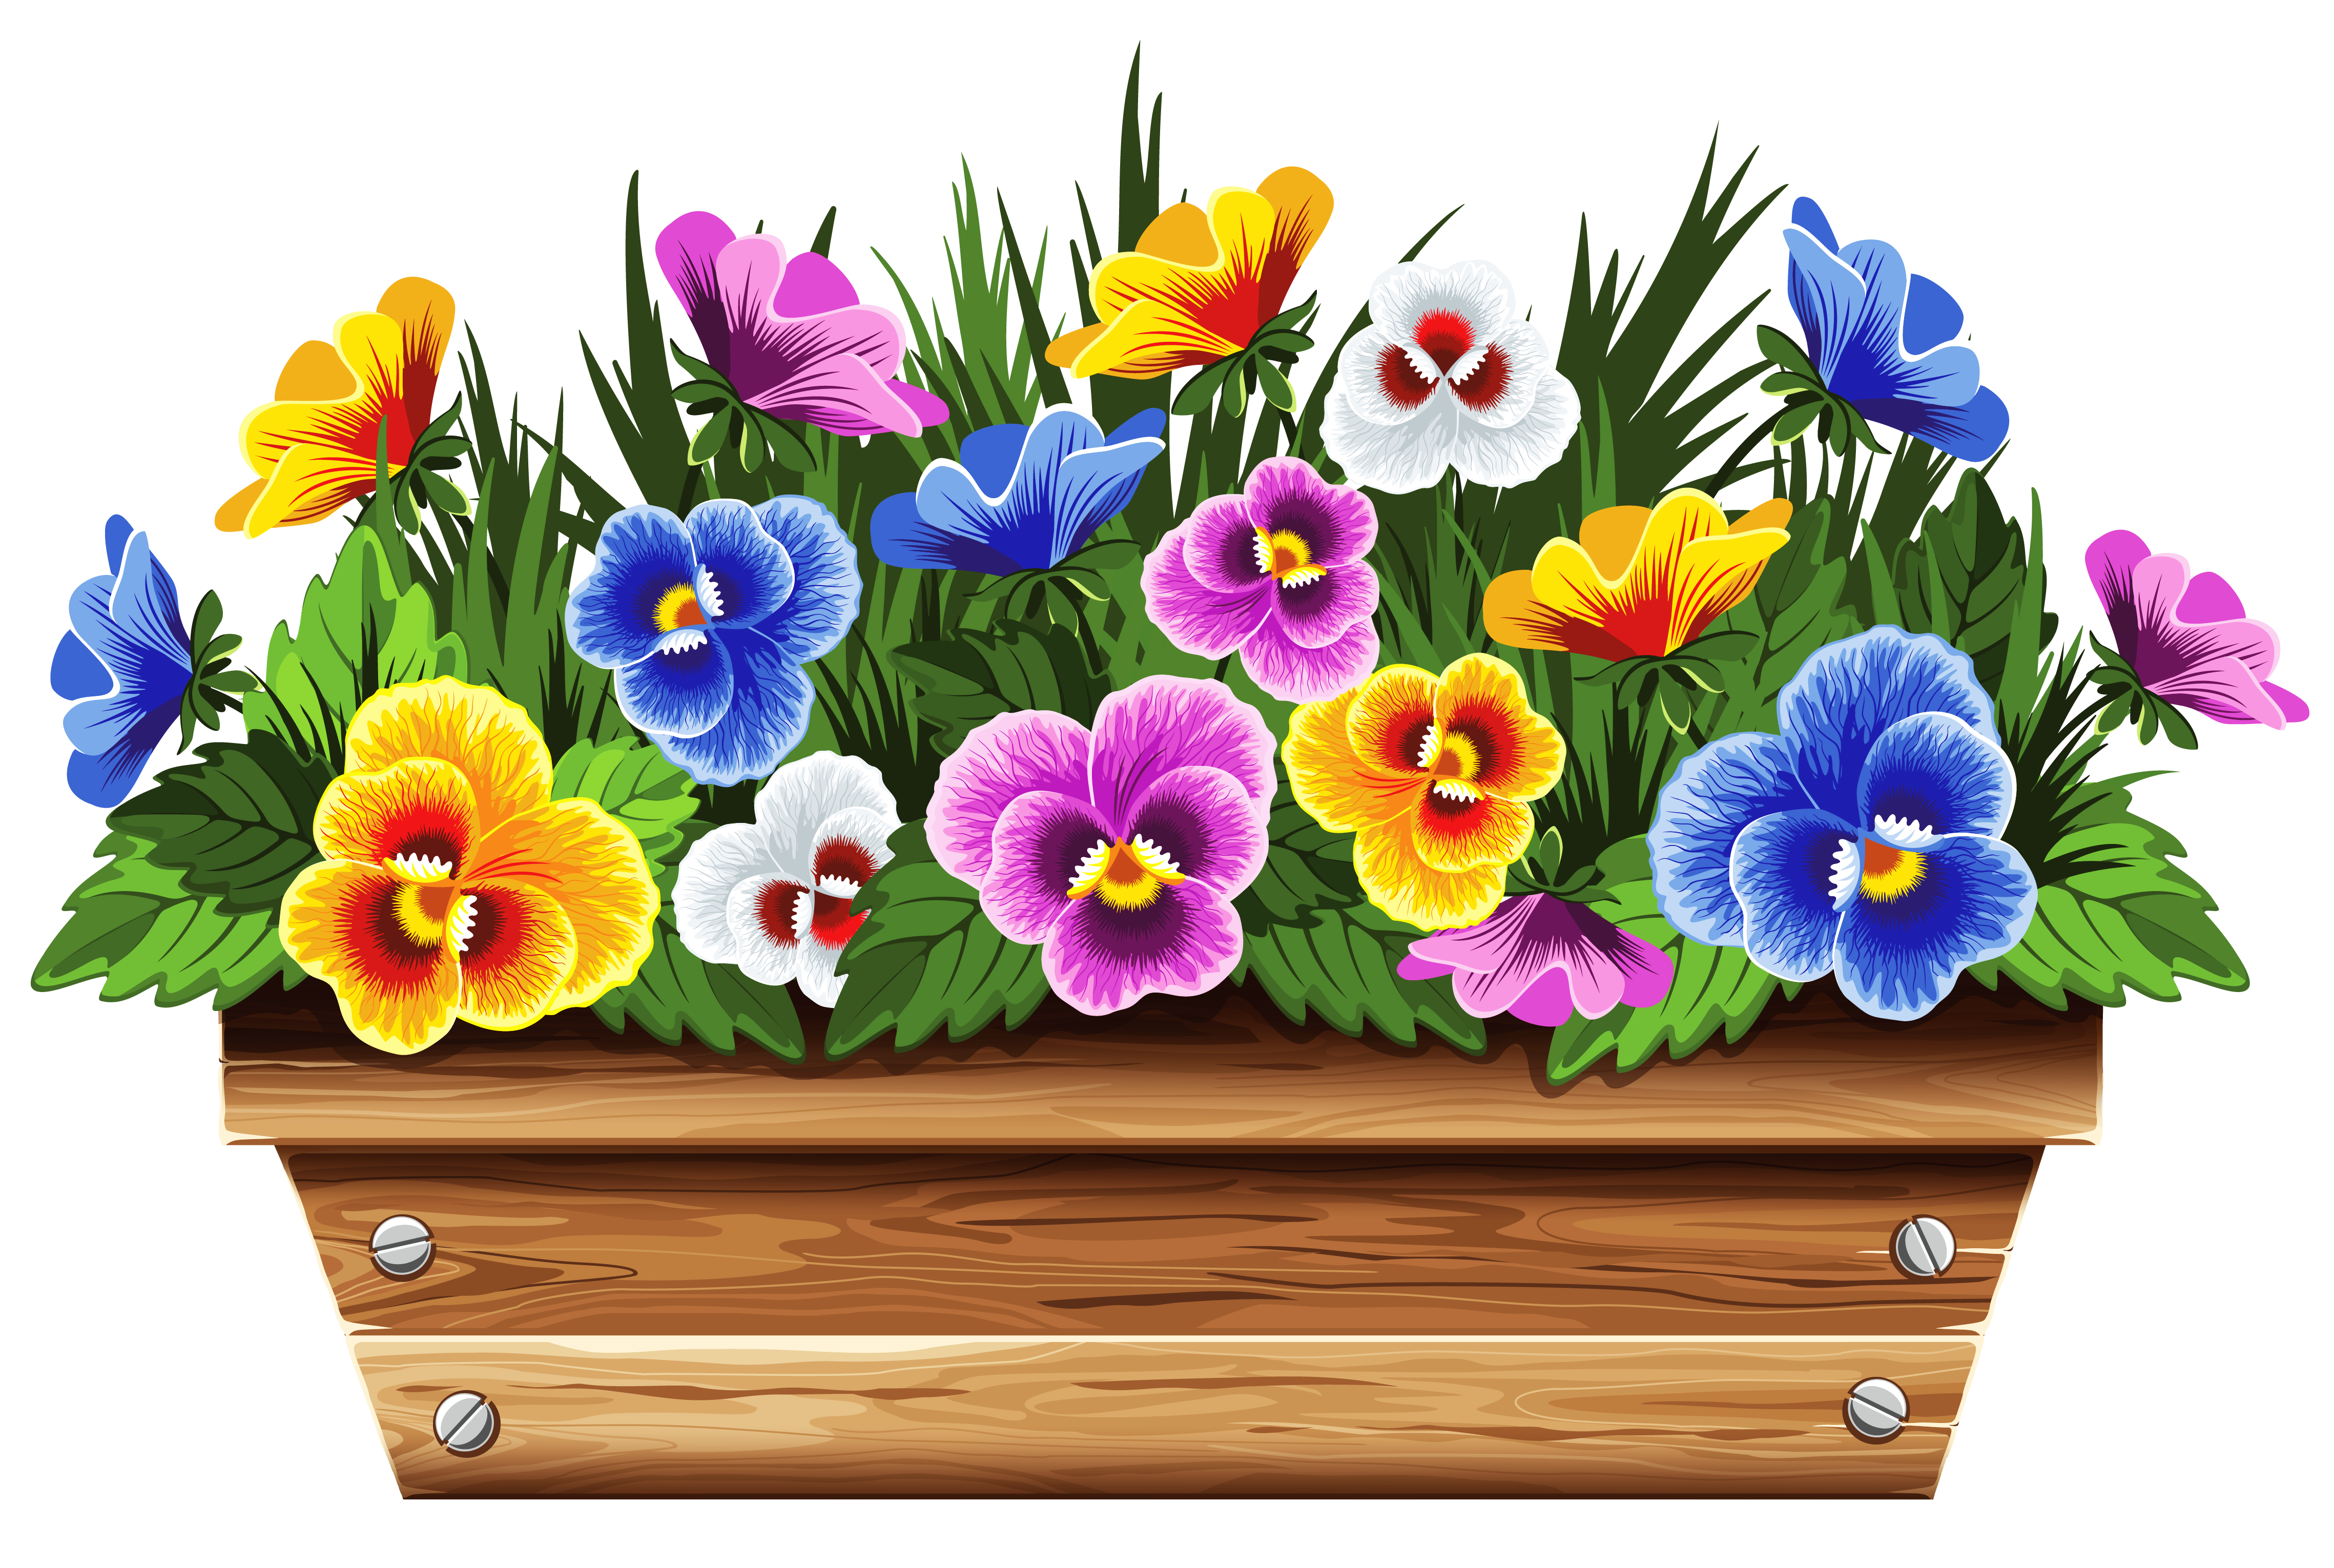 Flower box png. With violets clipart picture